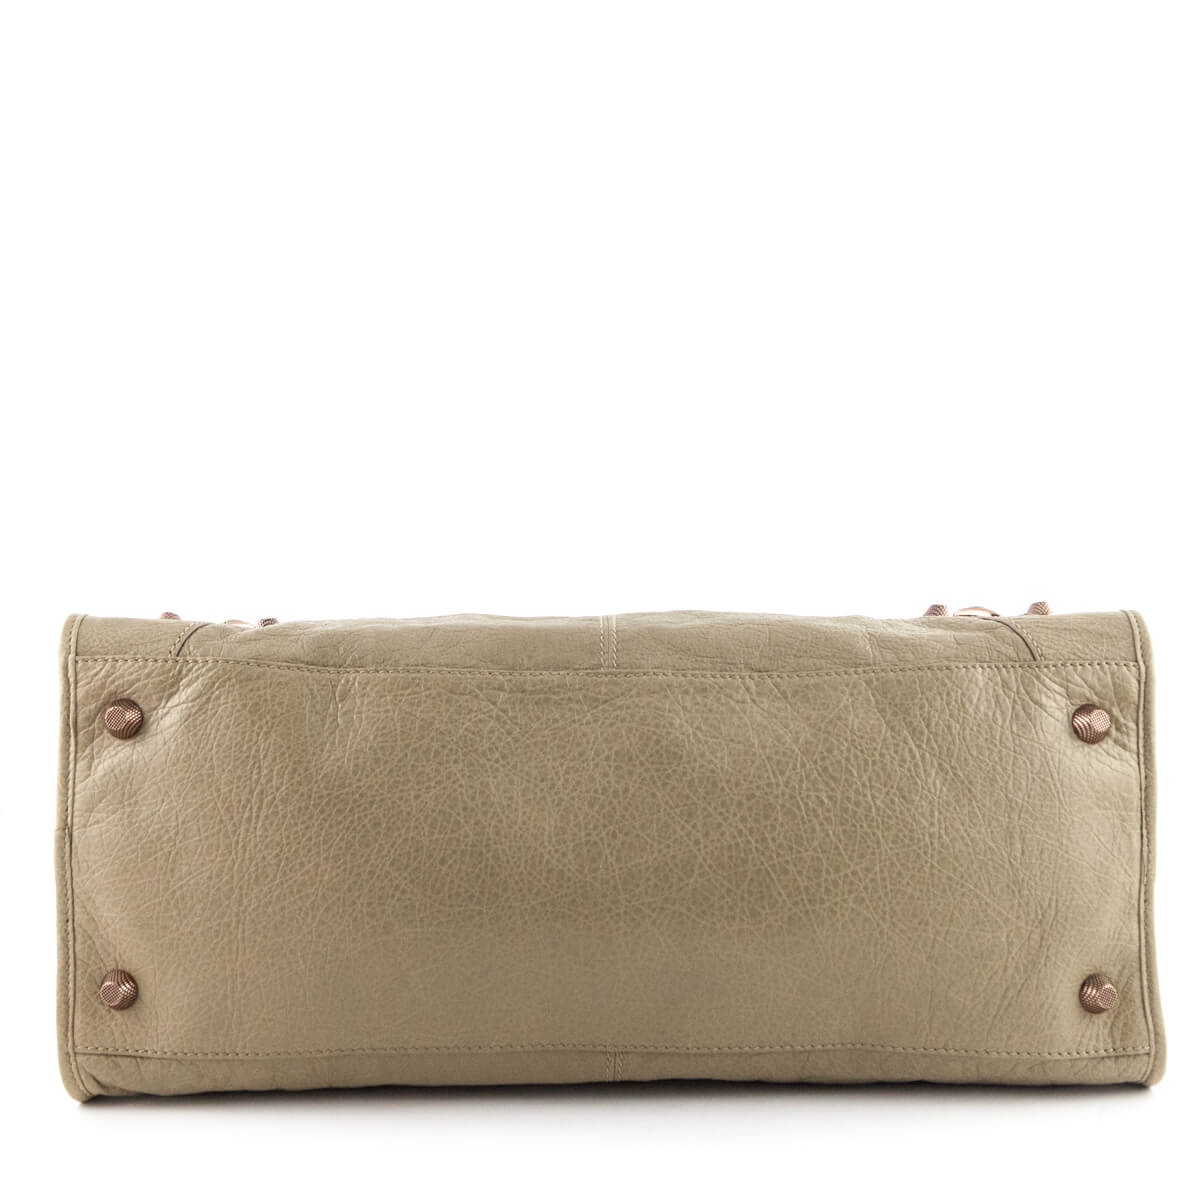 a1ee508aa9cd ... Balenciaga Beige Giant 21 Rose Gold Work bag - LOVE that BAG - Preowned  Authentic Designer ...